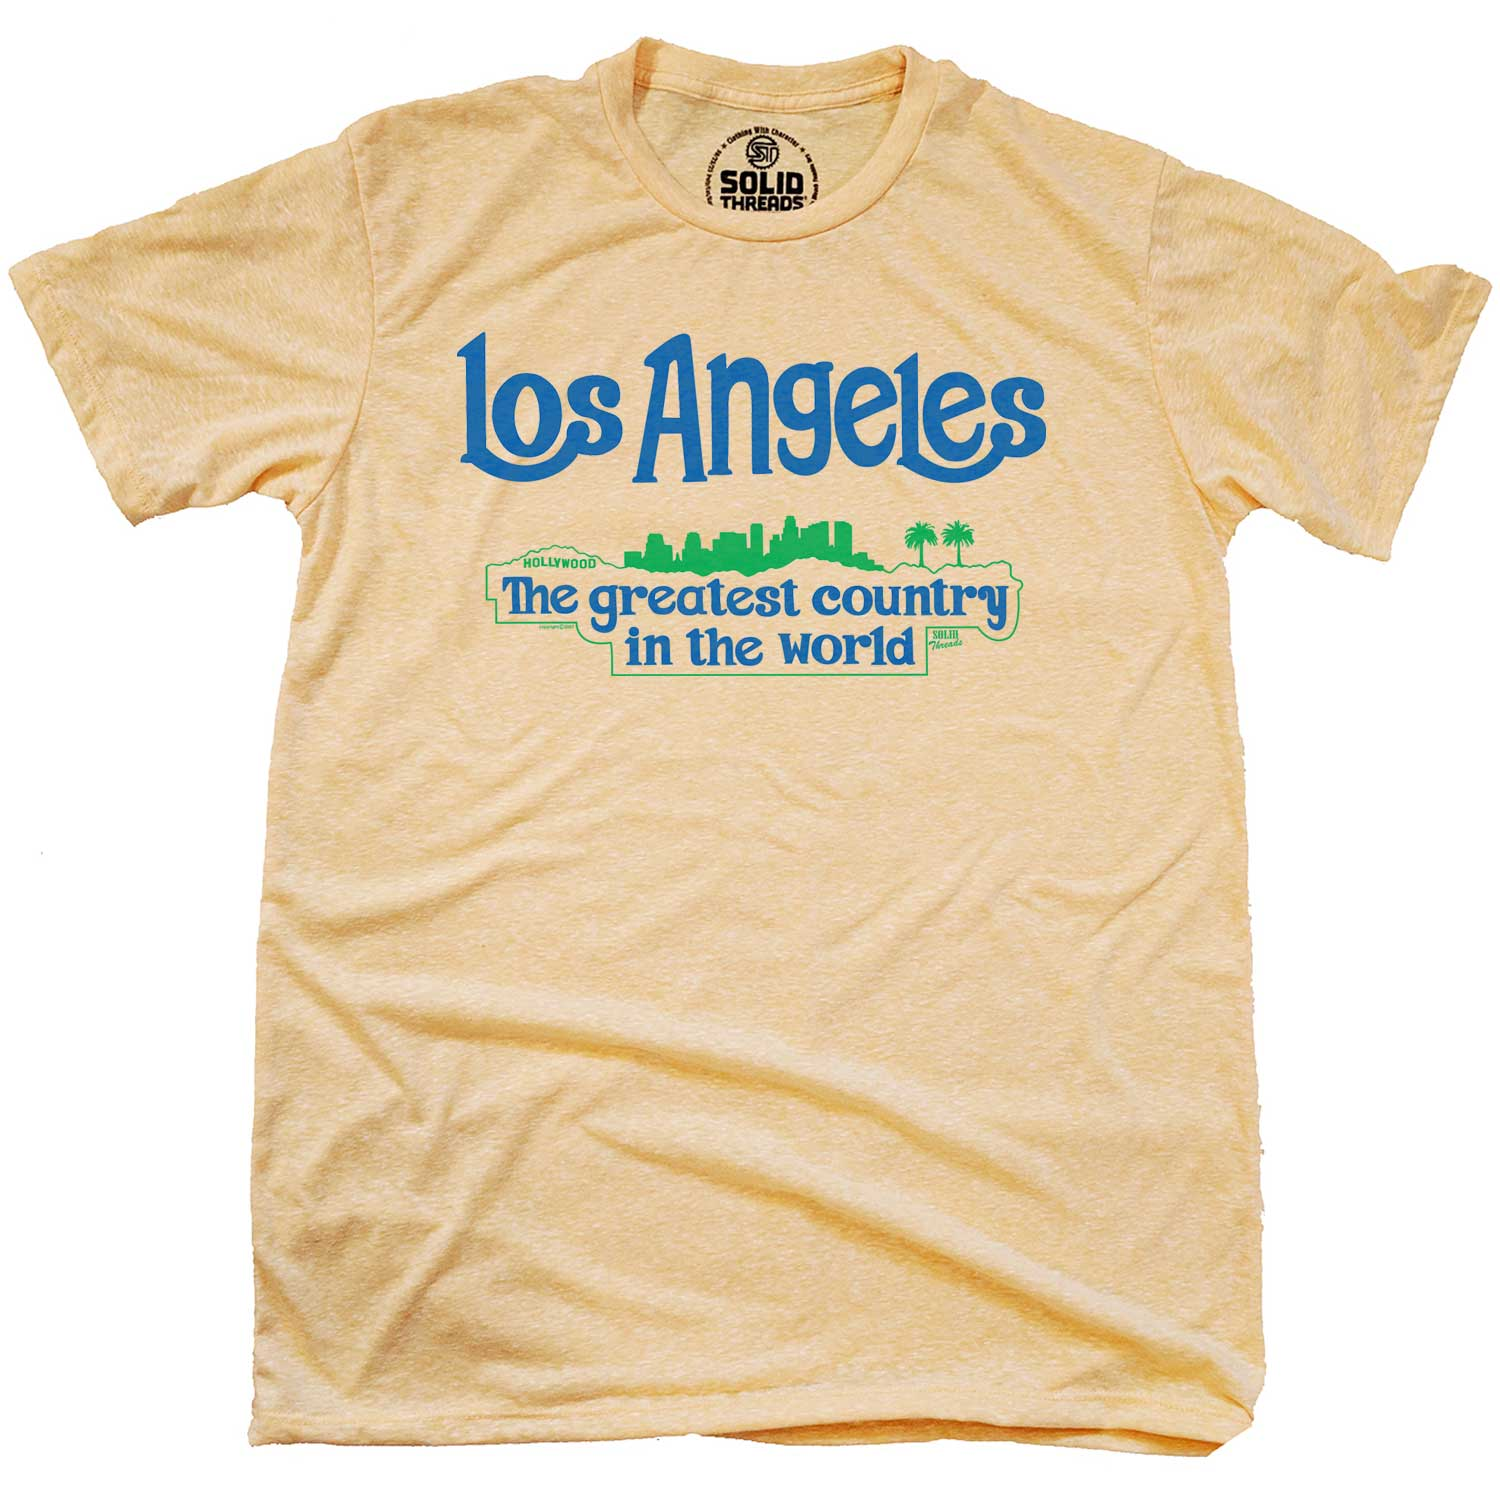 Men's Los Angeles Greatest Country In the World Vintage Inspired T-shirt | Funny California  Graphic Tee | Solid Threads